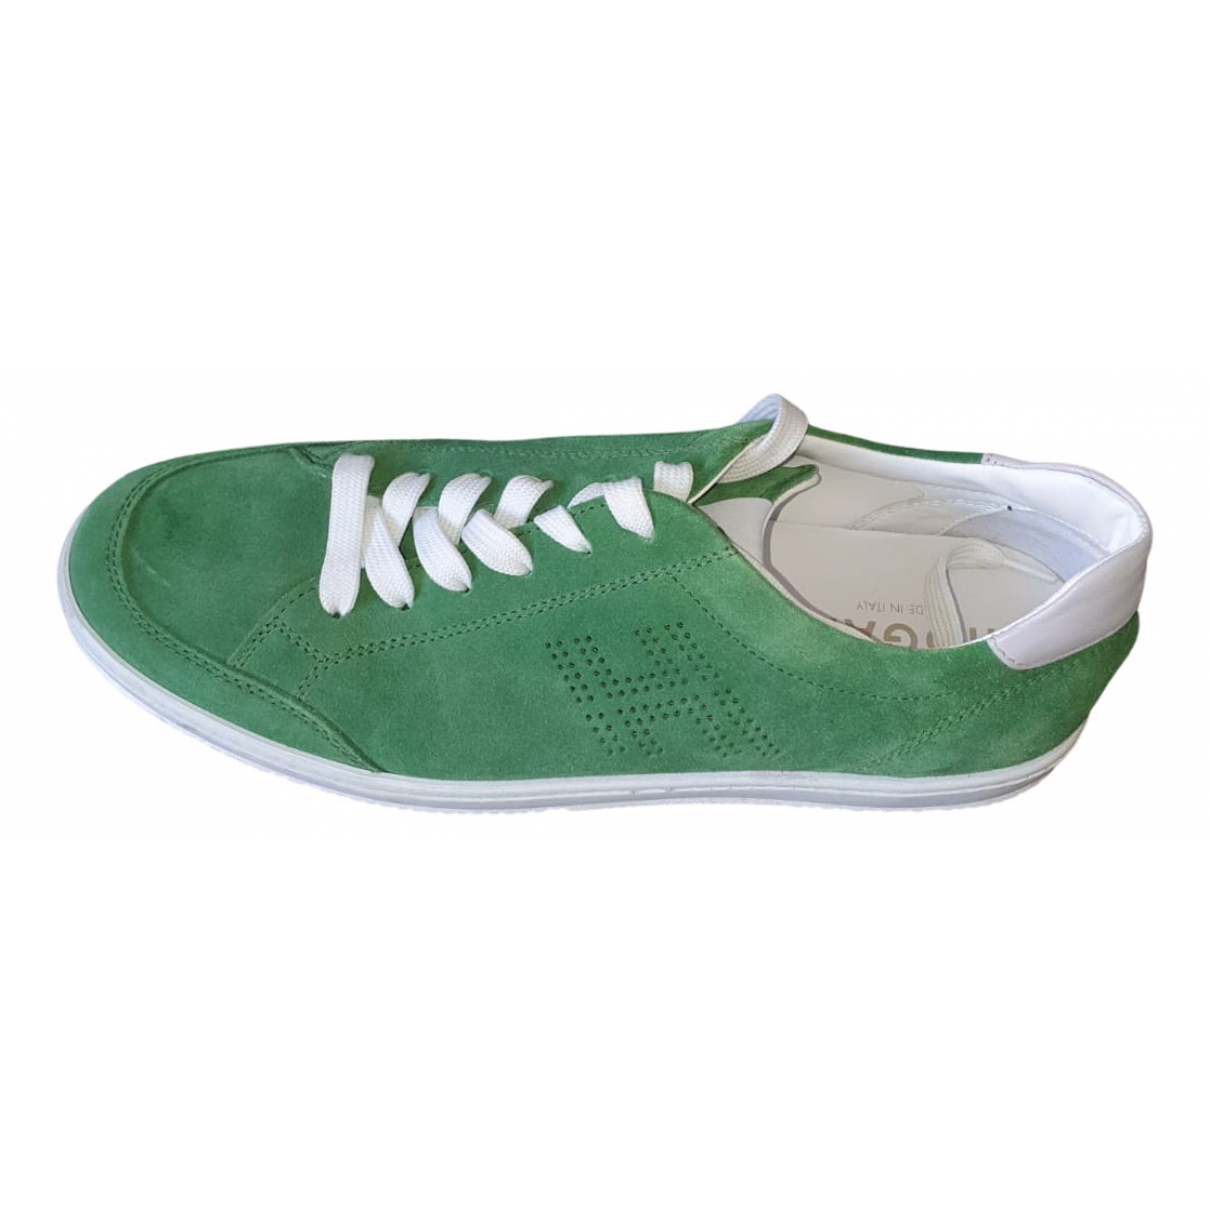 Hogan \N Green Leather Lace ups for Men 9.5 US